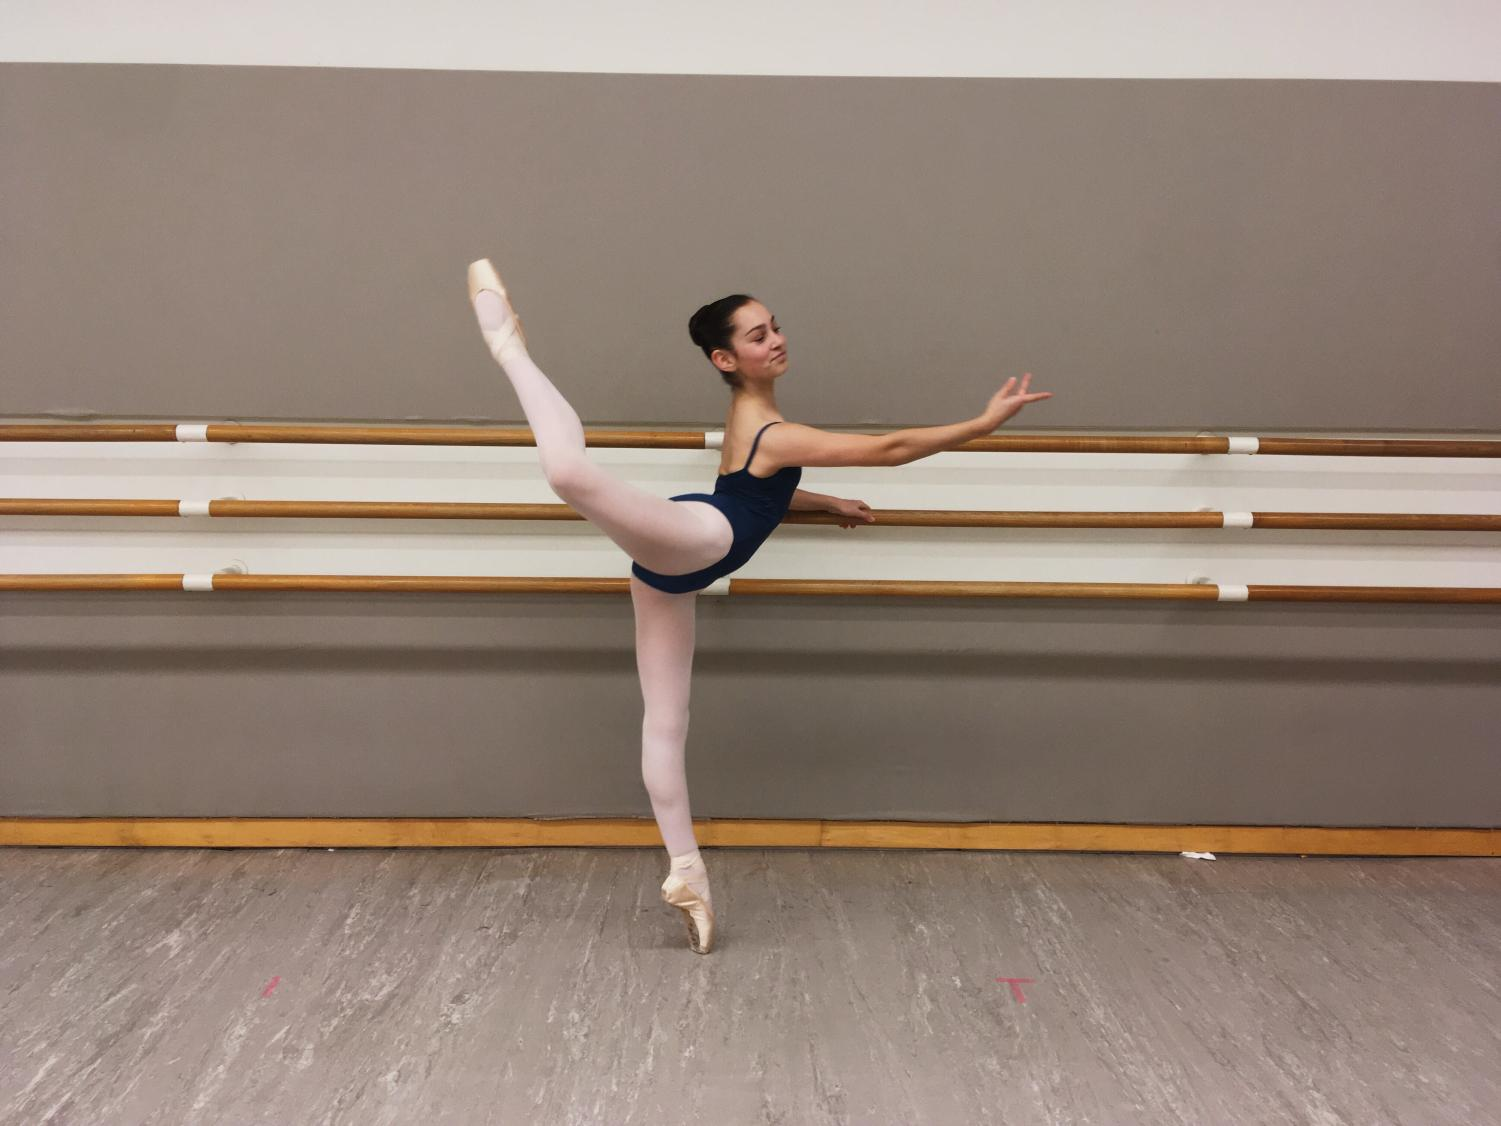 Gracefully refining her technique, Lubinski practices her back attitude at the barre at San Francisco Ballet school, where she takes classes.